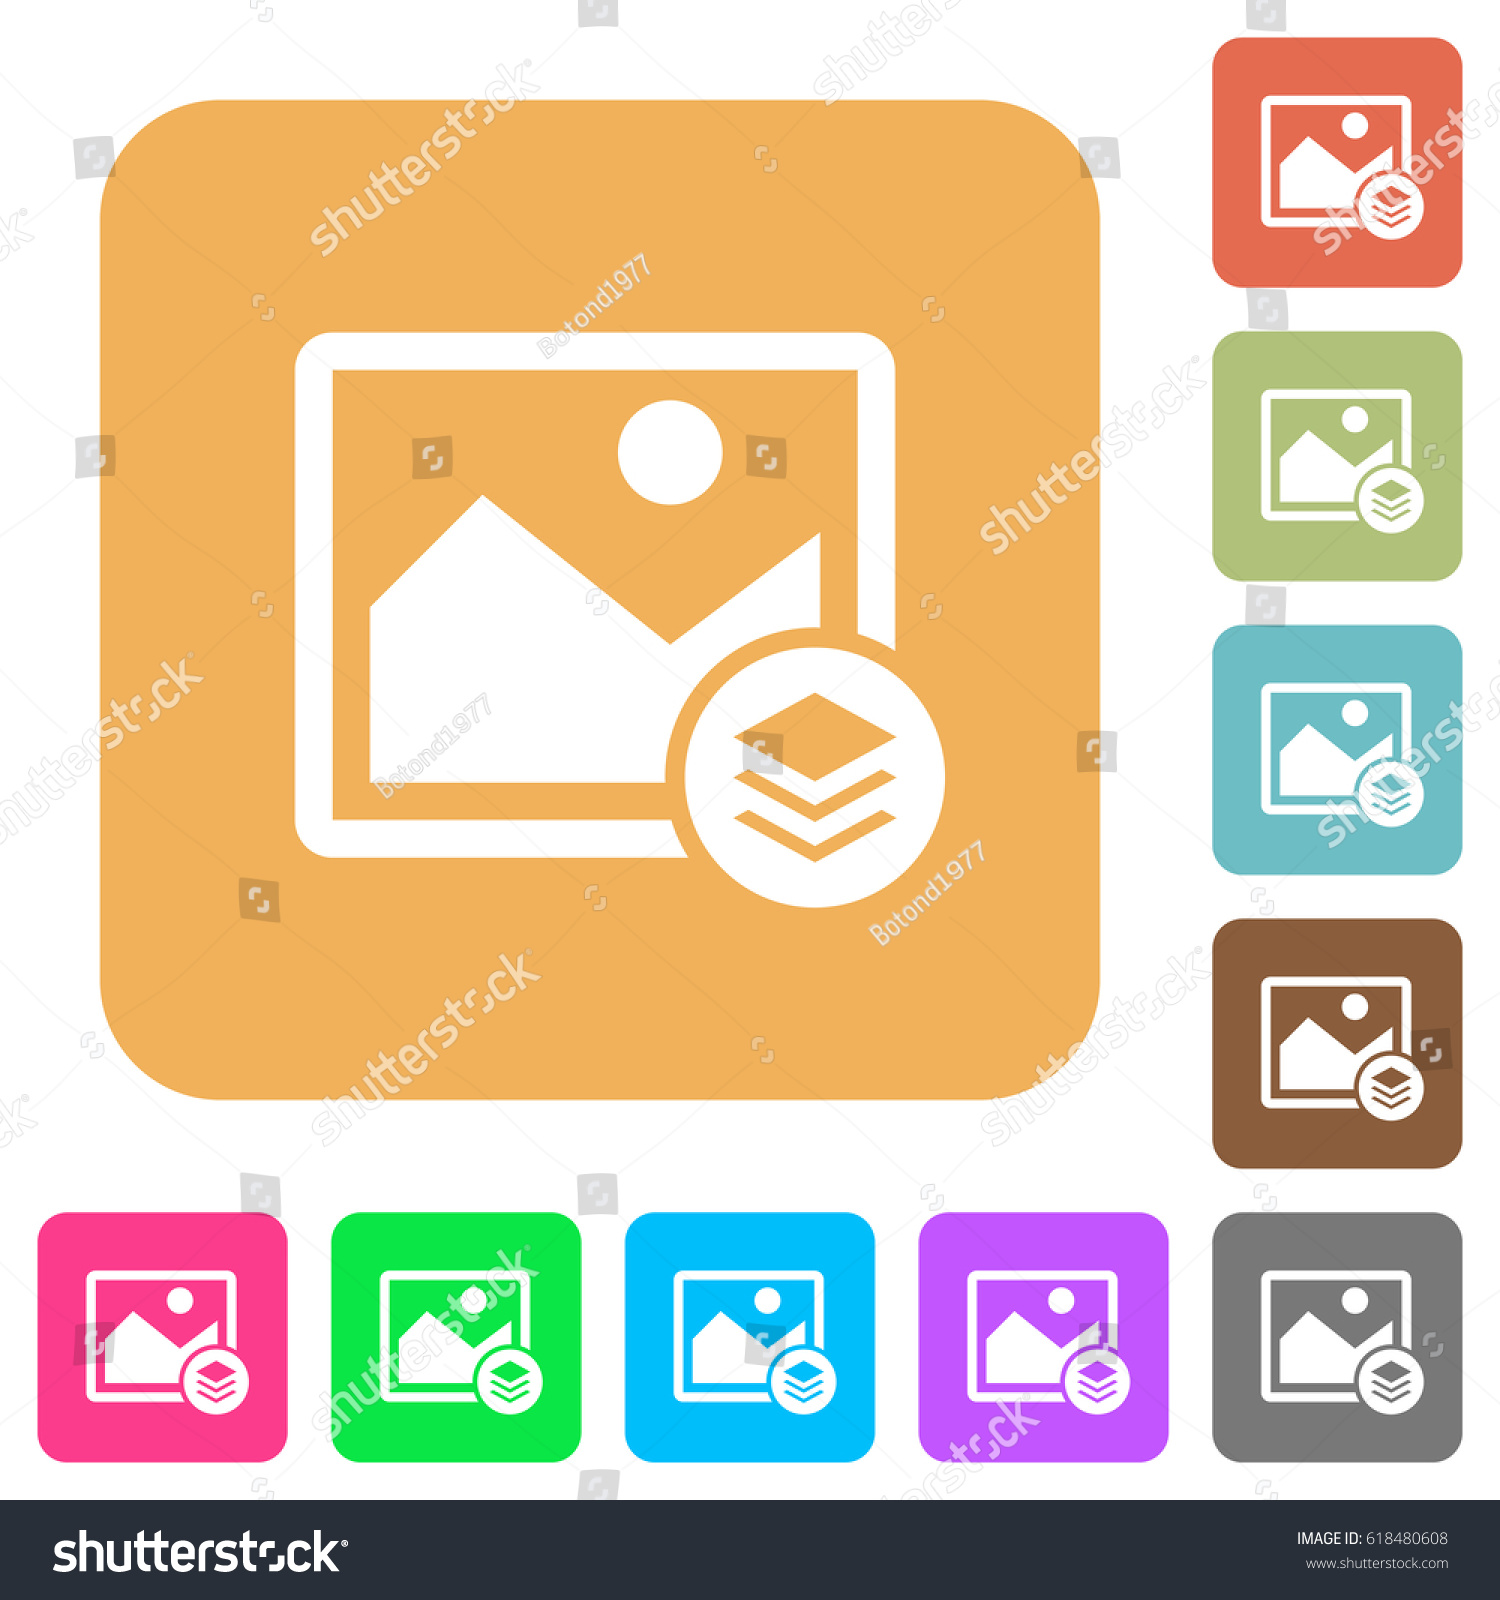 Image Layers Flat Icons On Rounded Stock Vector Royalty Free